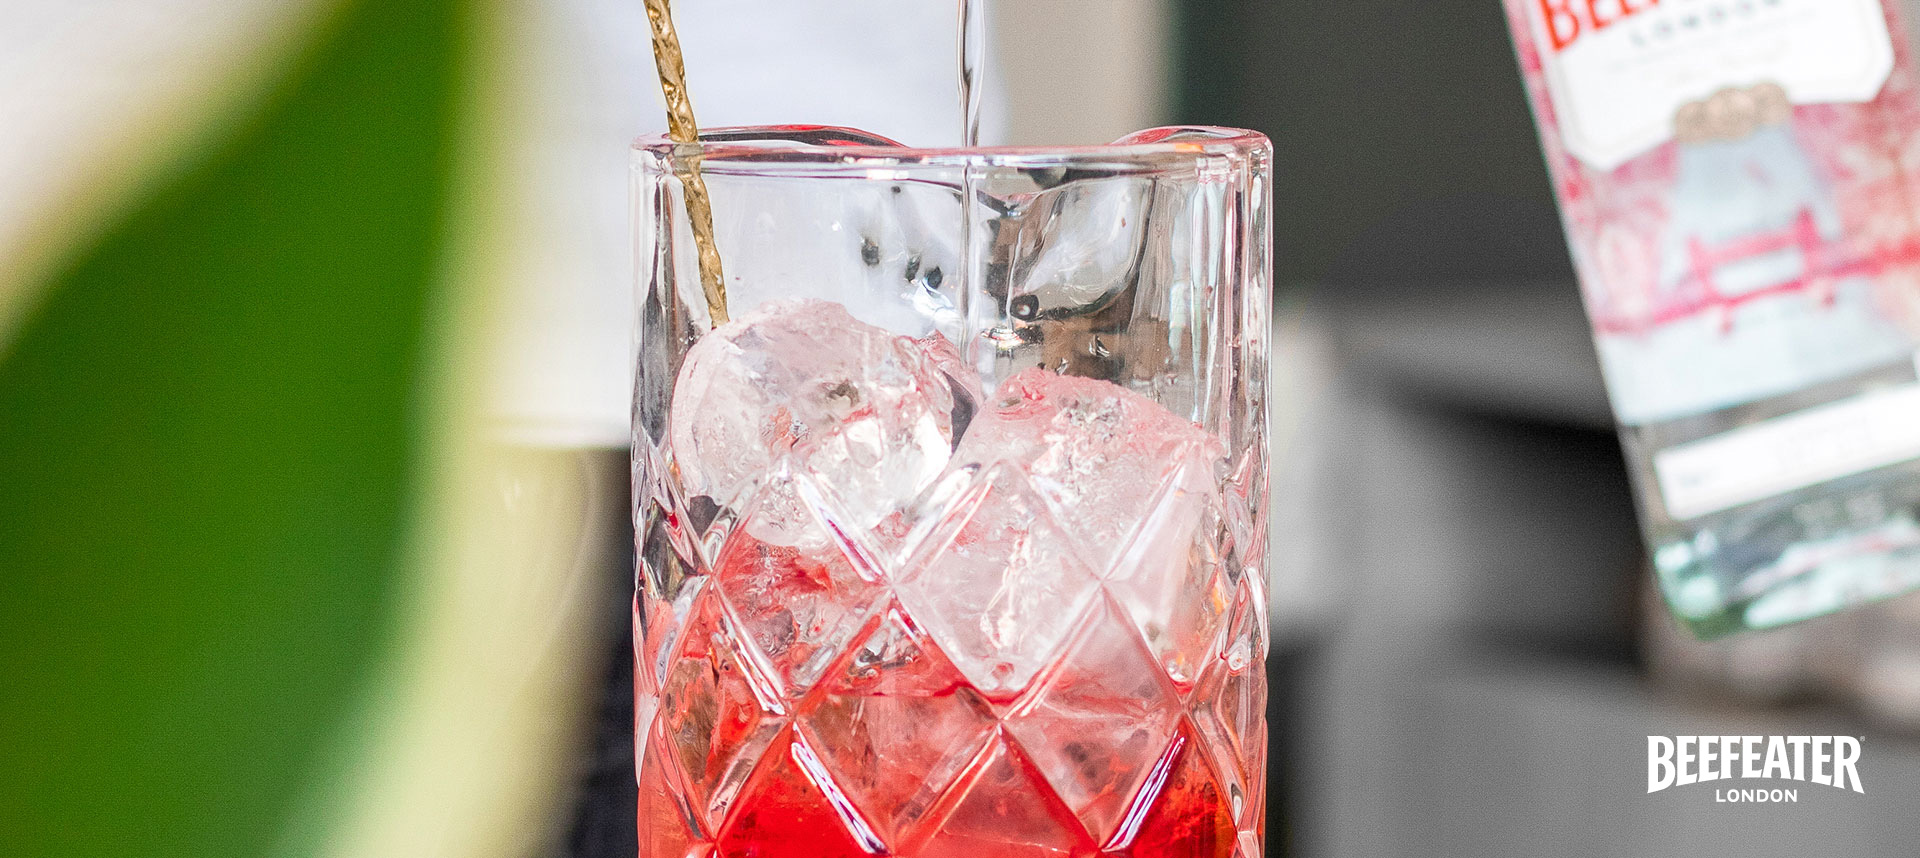 Everything you need to know about negronis